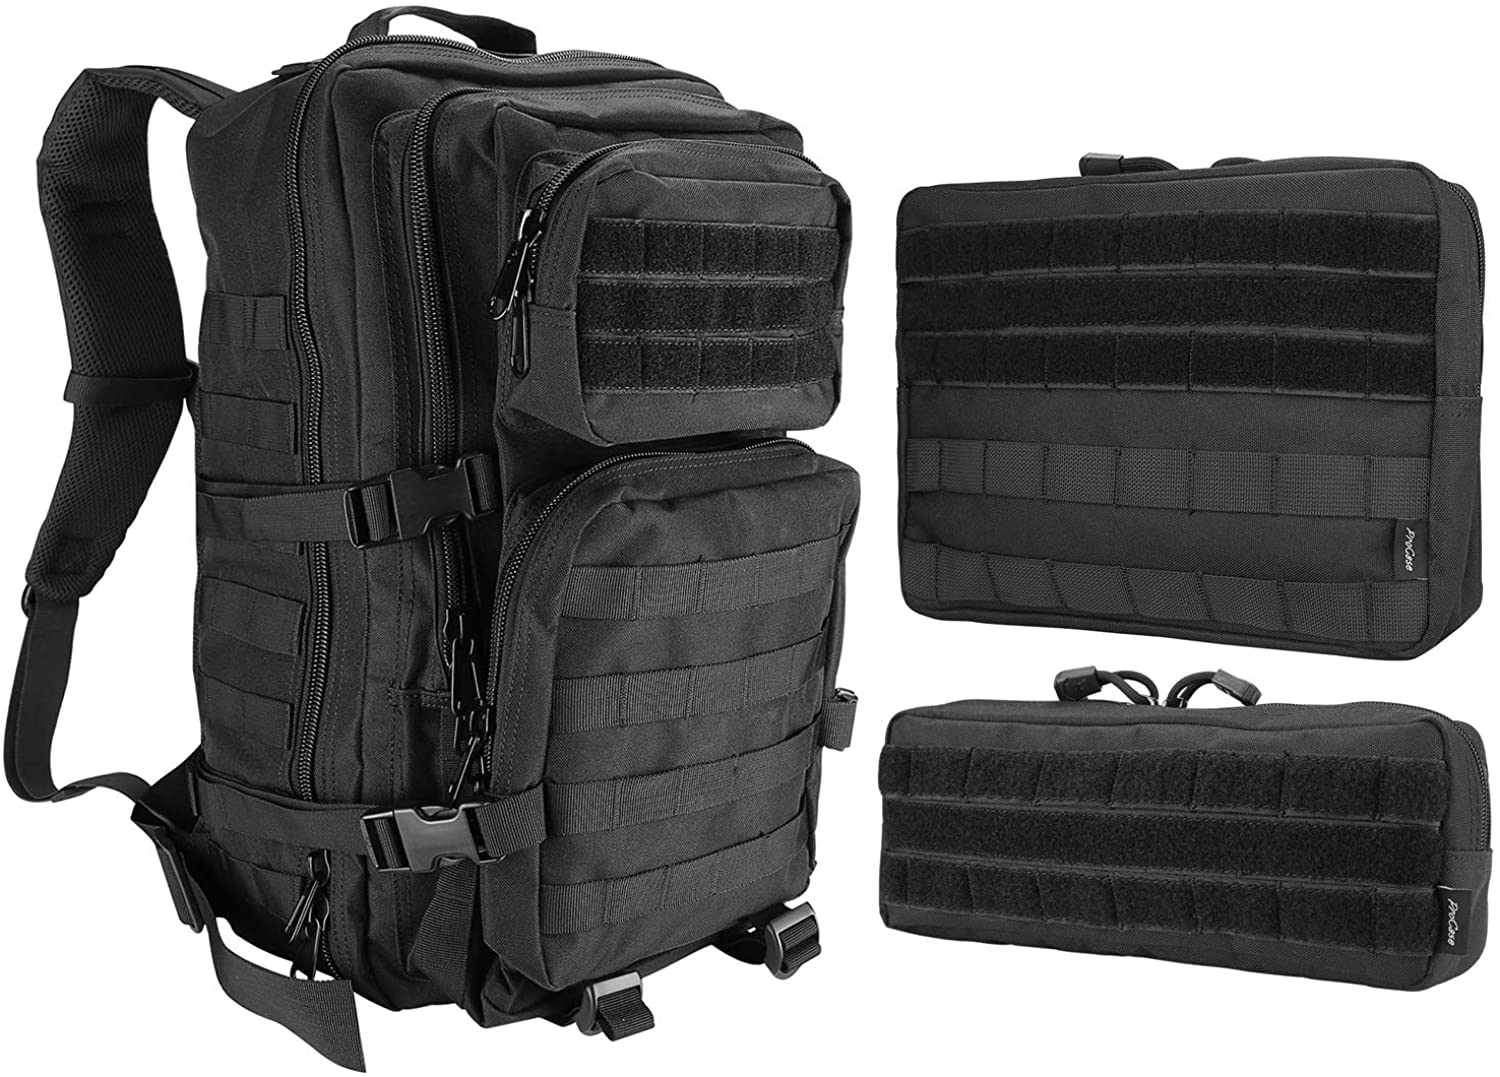 ProCase Tactical Backpack Bag 40L Large Bundle with 2 Versatile Molle Admin Pouch EDC Carry Bags for Magazine, Map and Other Small Tools -Black